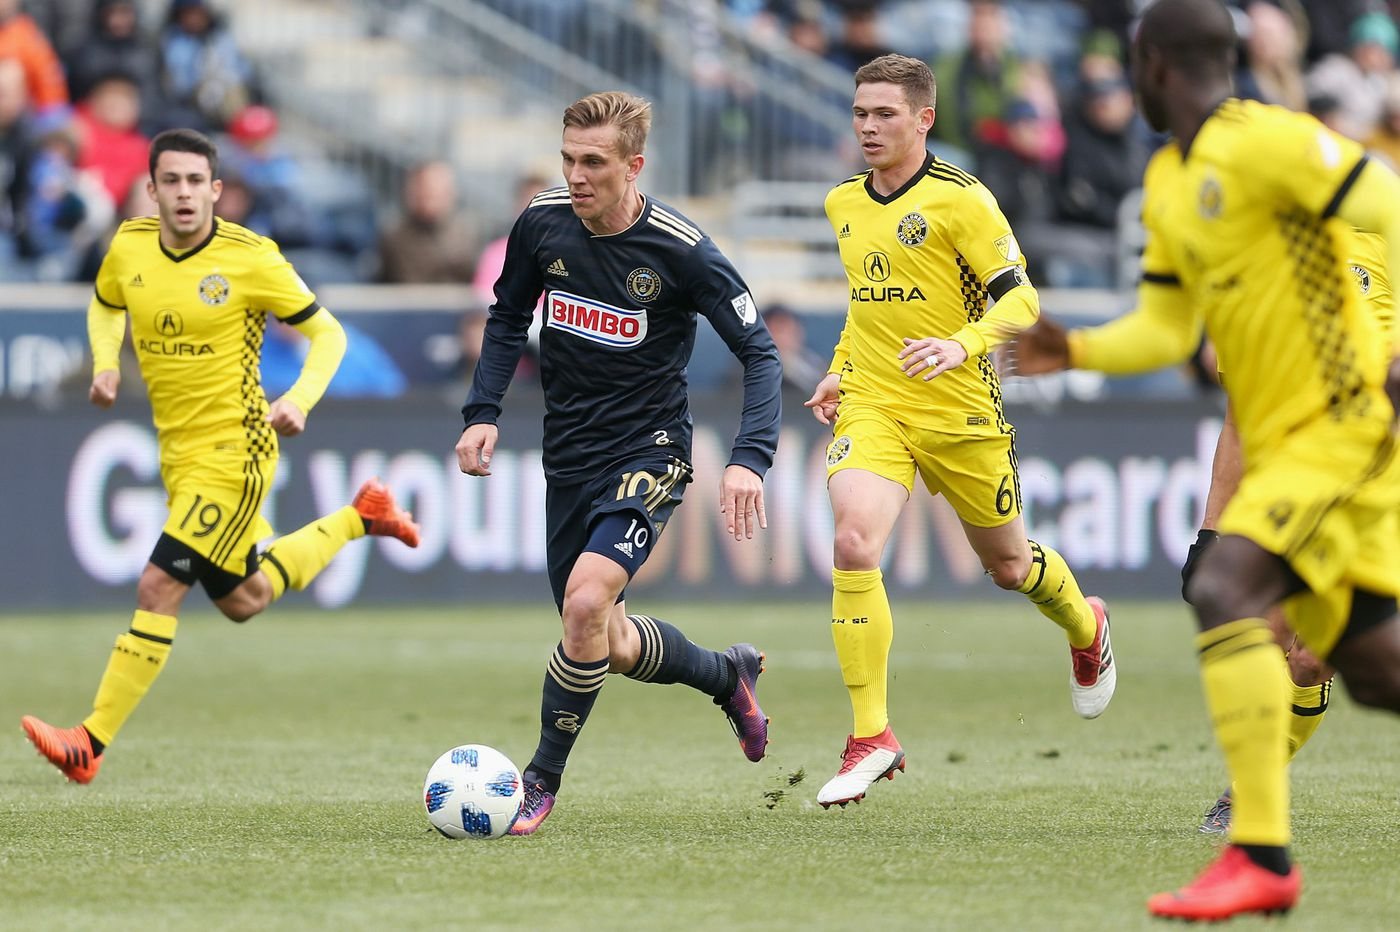 Philadelphia Union 2018 player salaries as of May 1